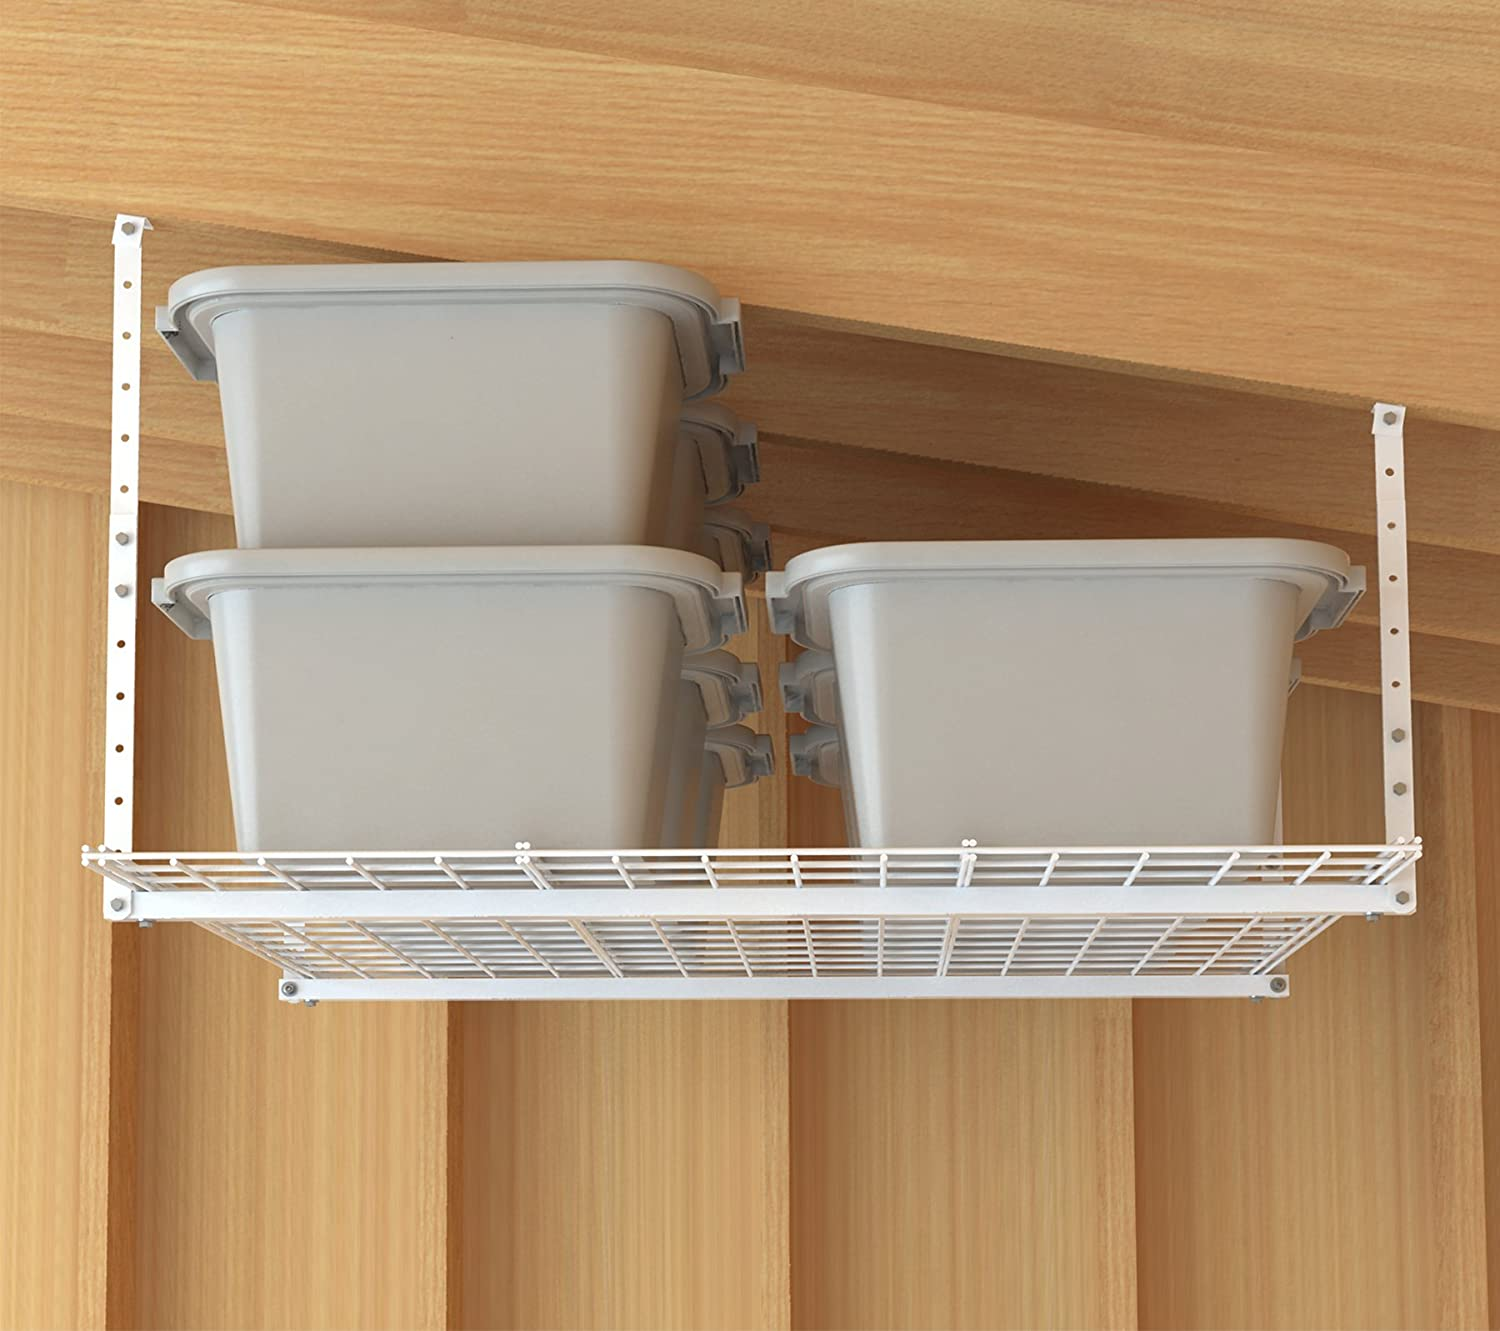 hyloft ceiling storage instructions